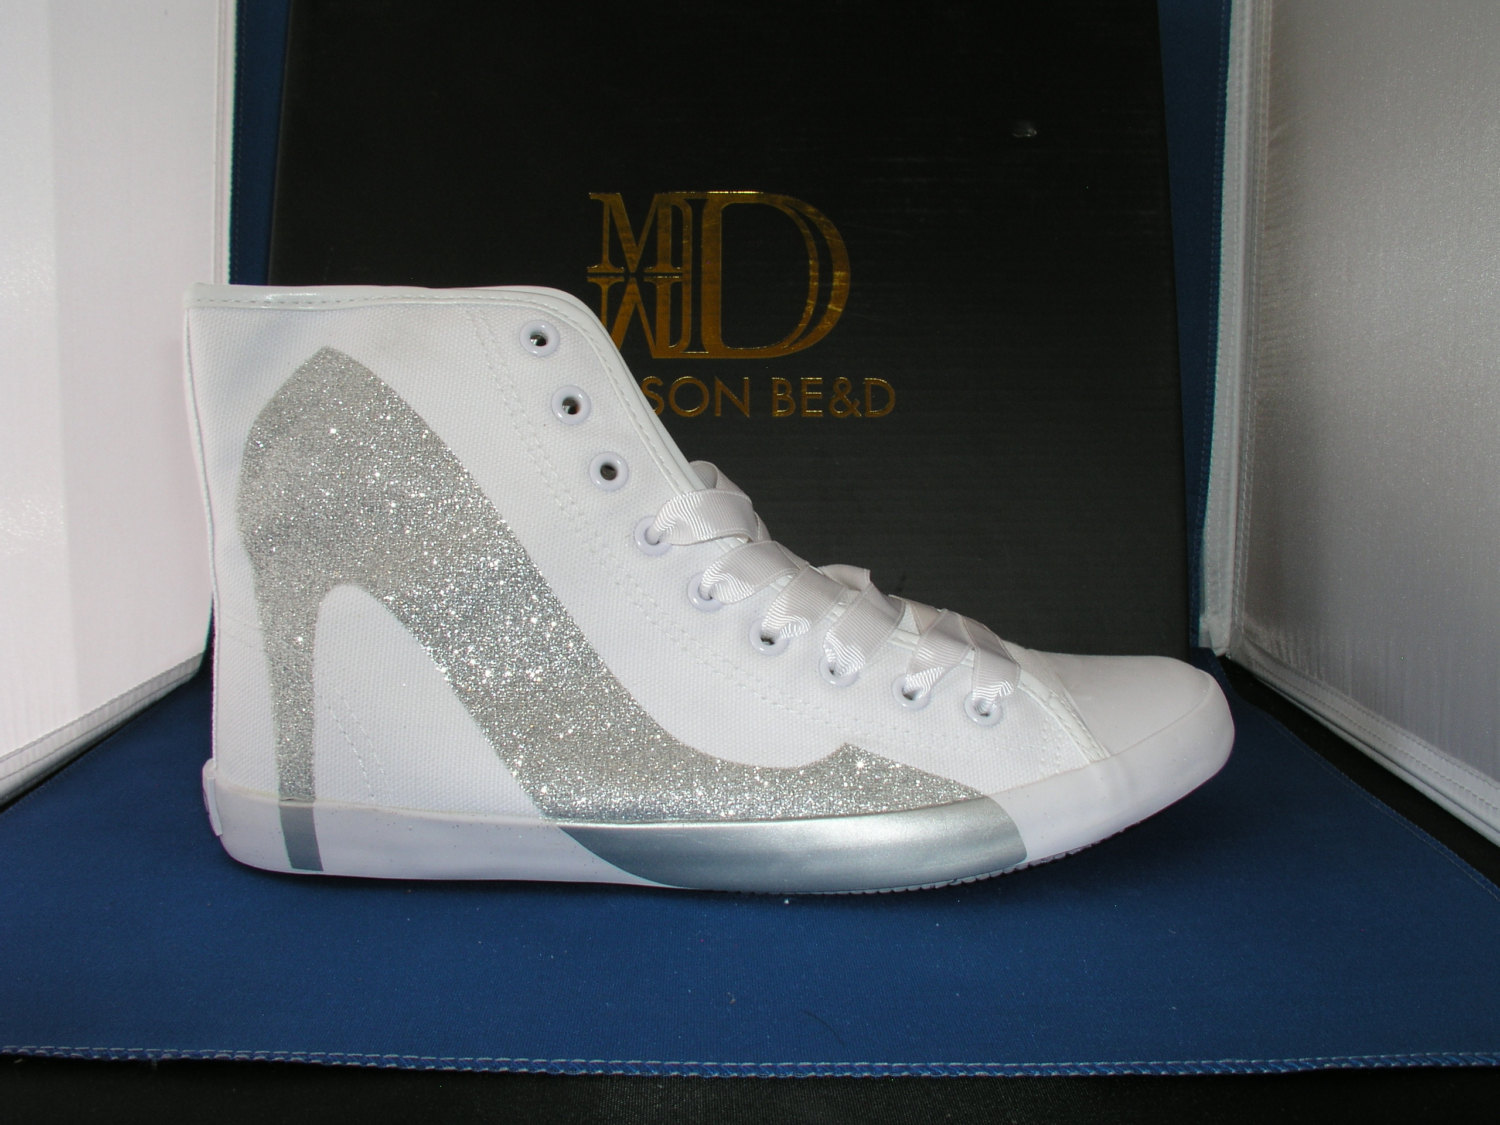 Primary image for Bright Light Glitter Silver Sneaker by BE&D Maison Dumain